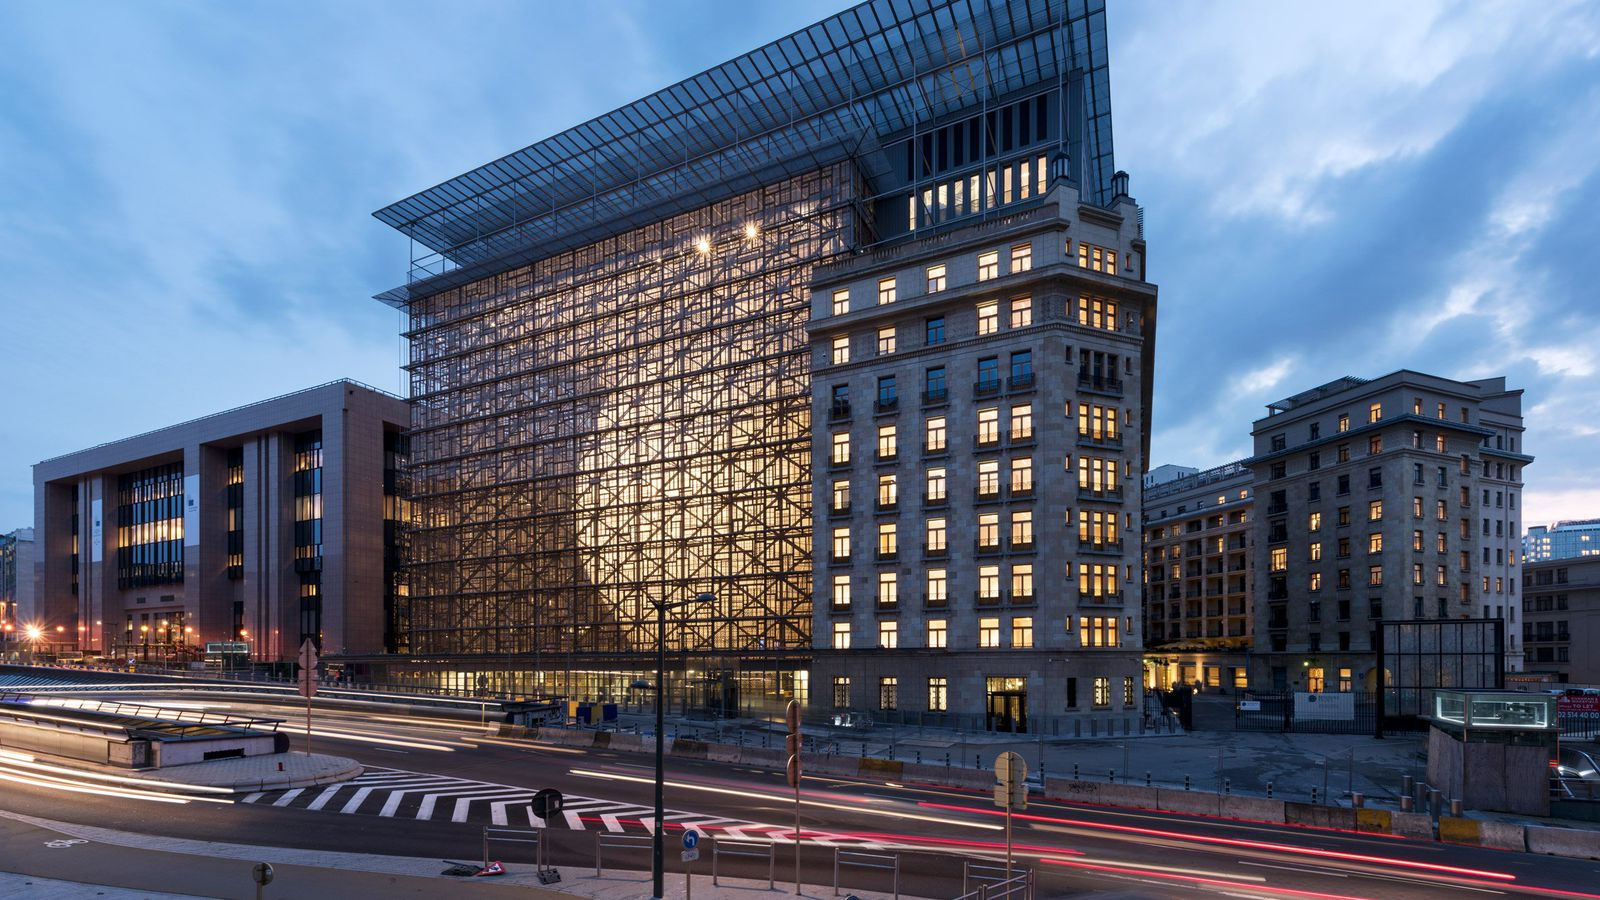 The European Union Just Got A Massive New Office Curbed